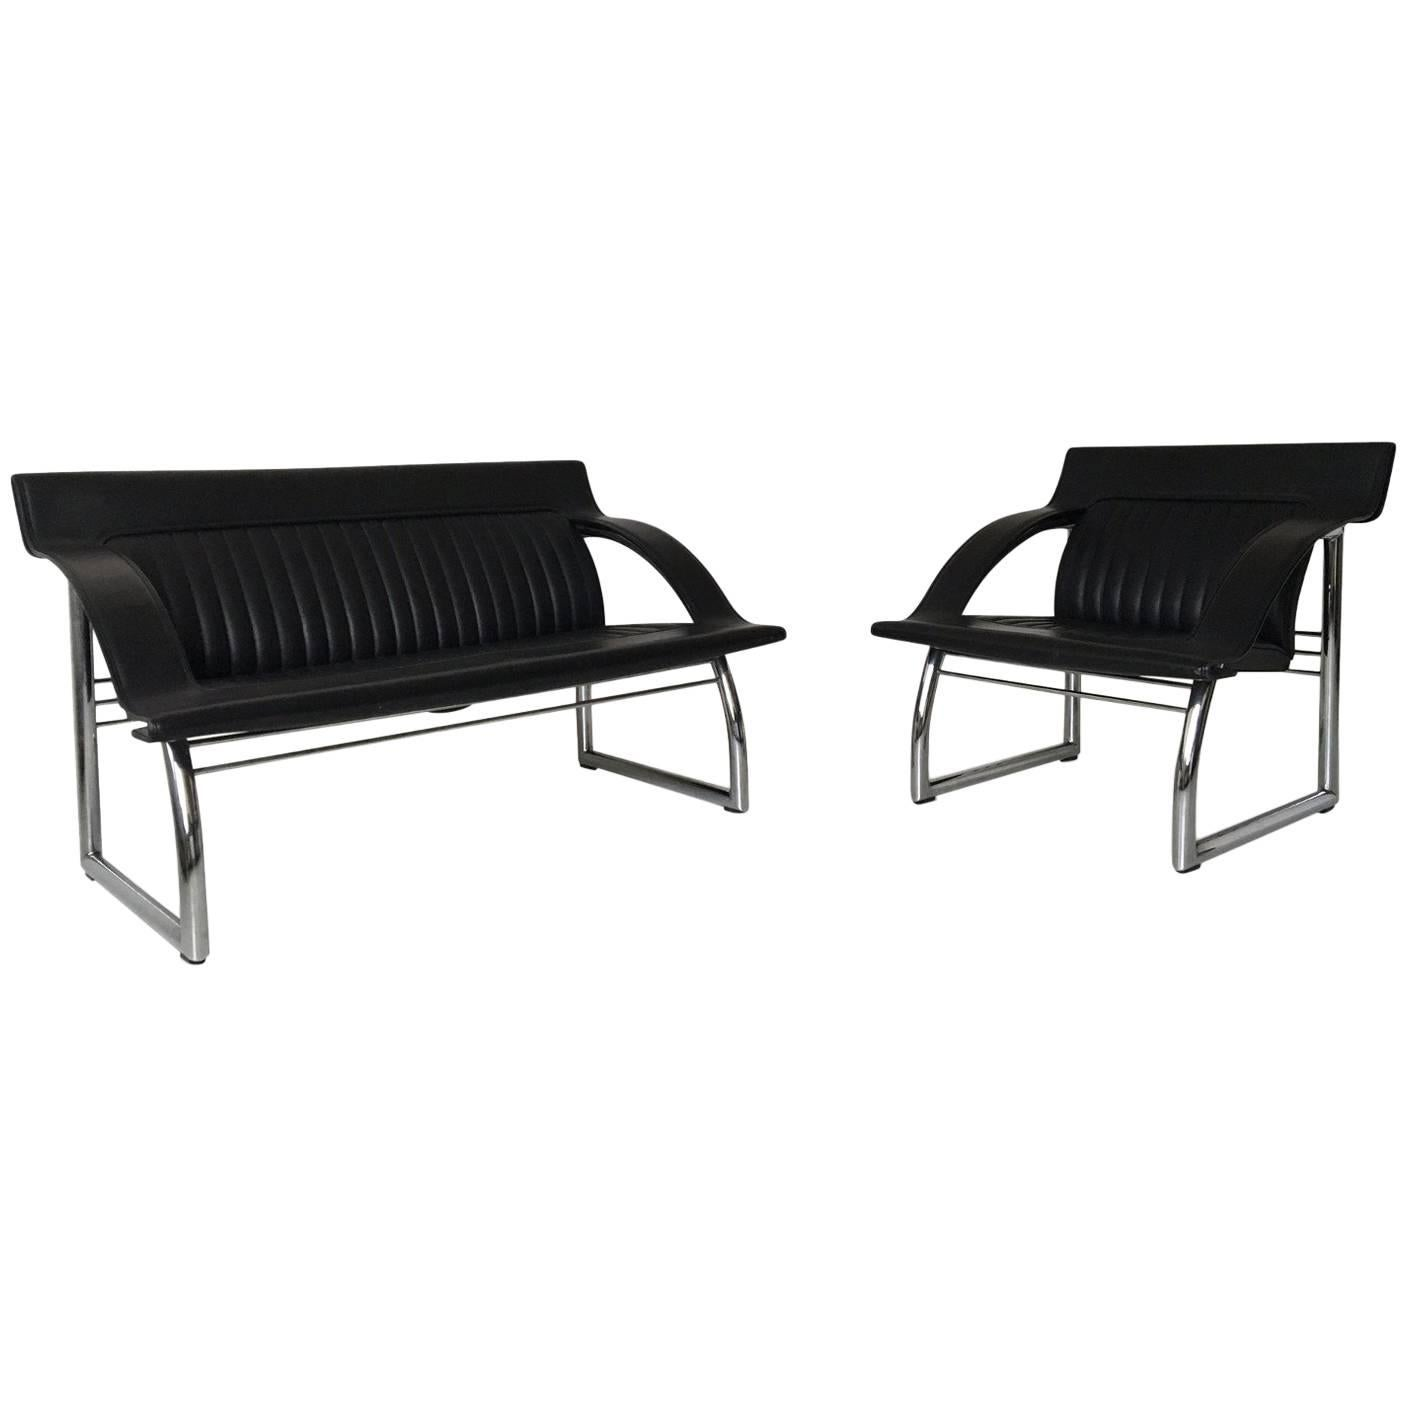 De Sede DS-127, Rare Black Leather Sofa and Lounge Chair by Gerd Lange, 1980s